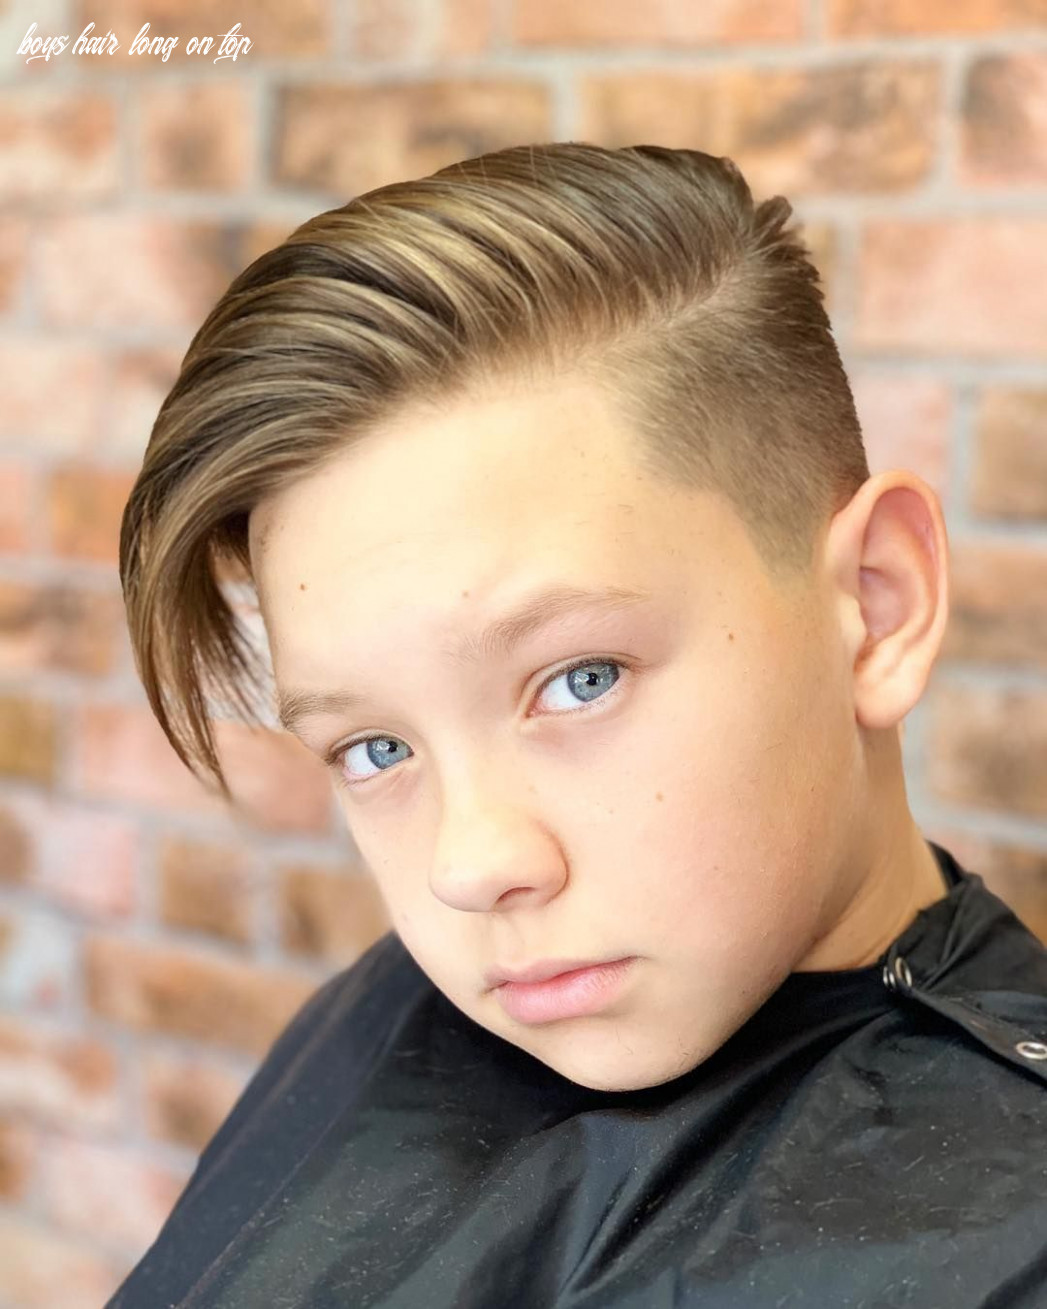 Pin on young person hairstyle boys hair long on top